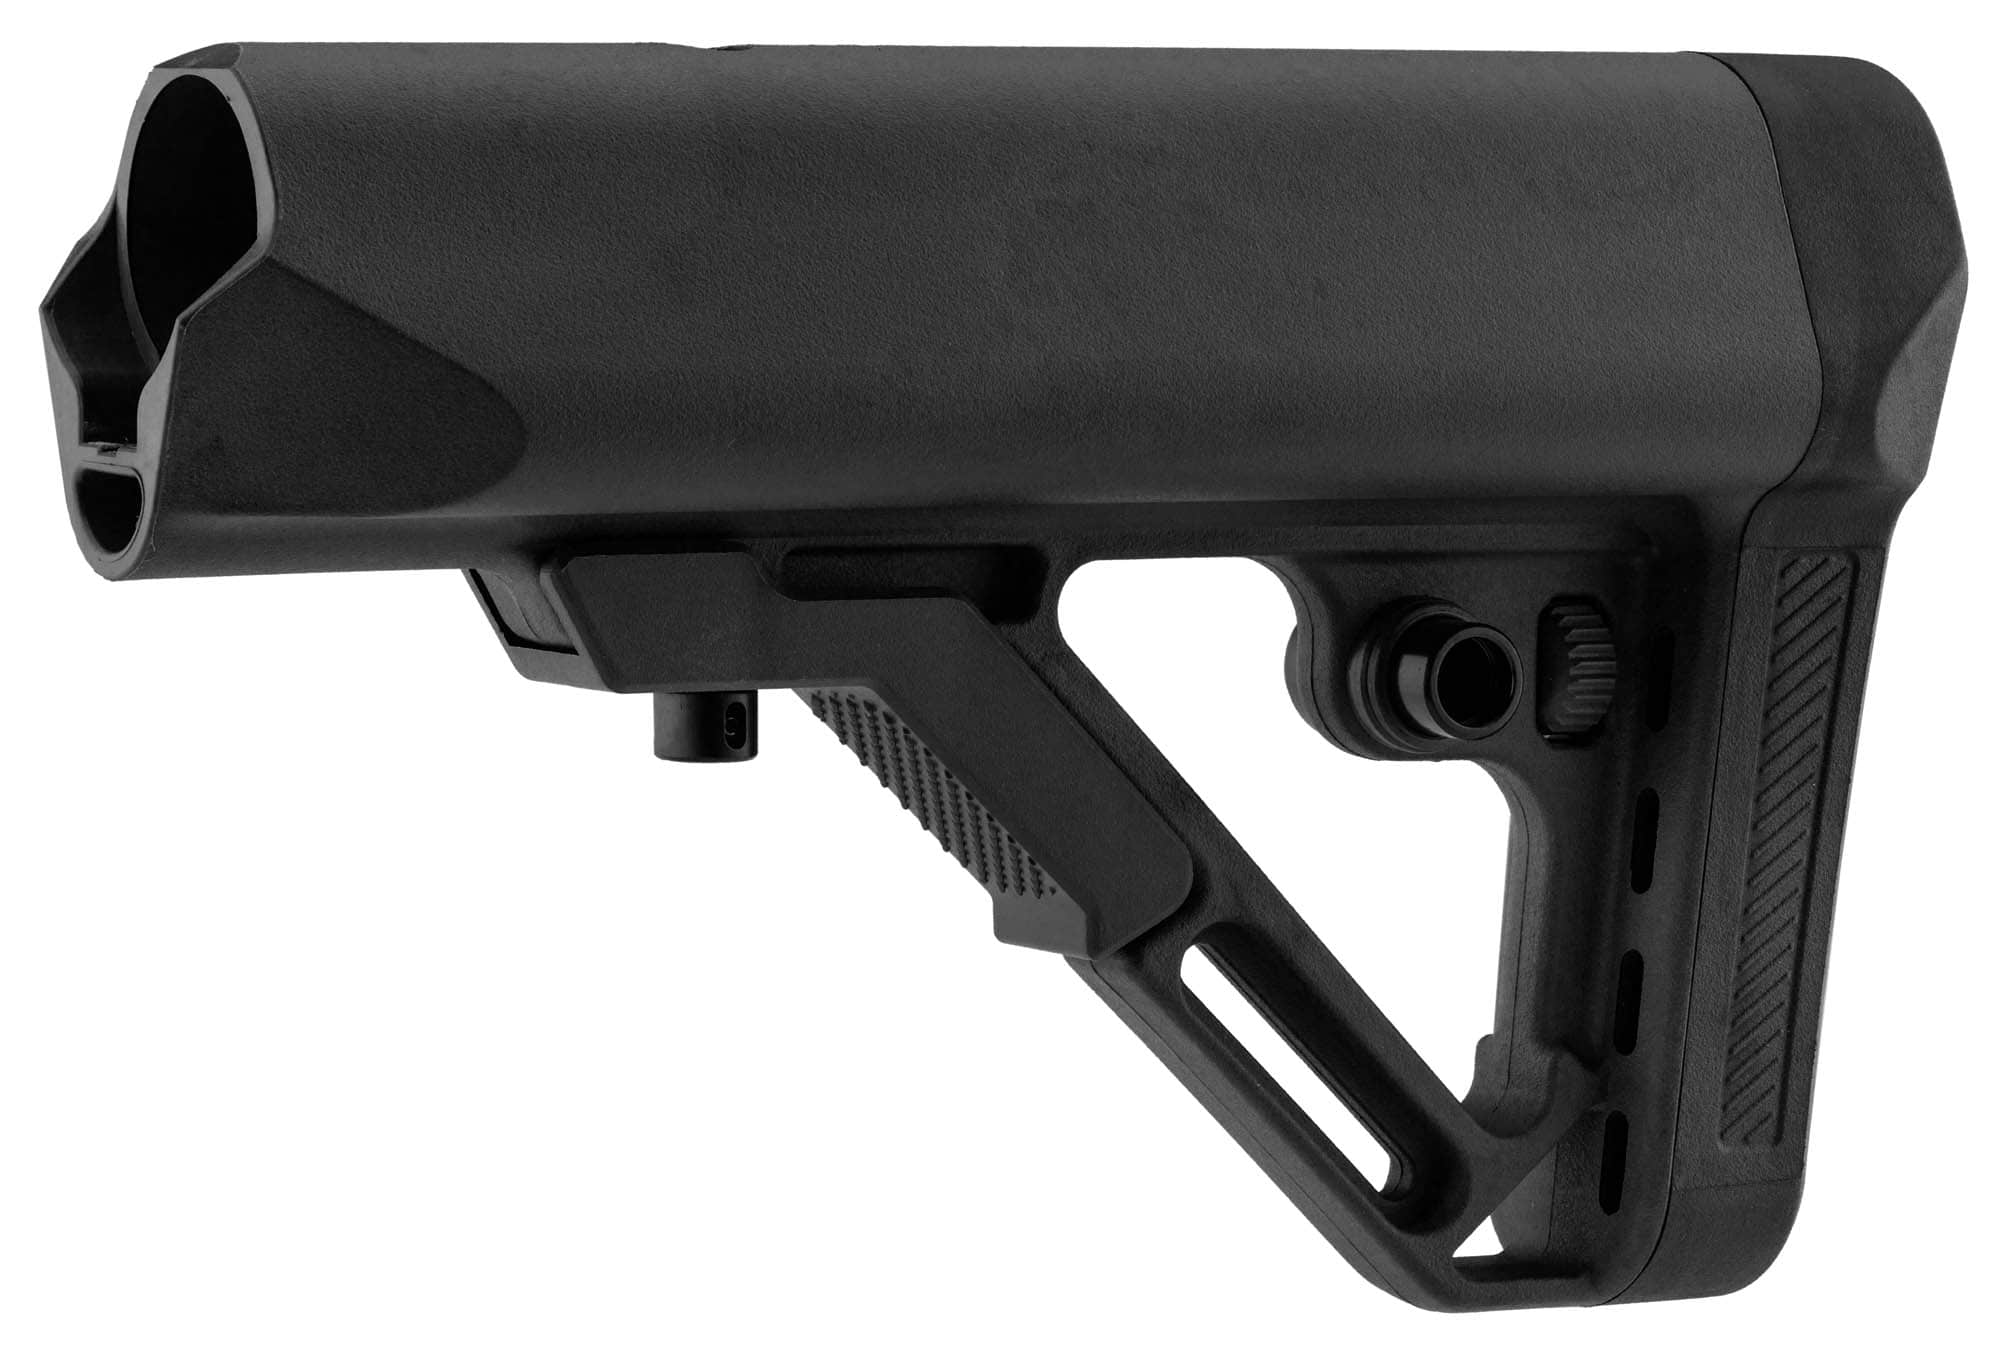 A67045-Crosse RS PRO Black airsoft - BO Manufacture - A67045